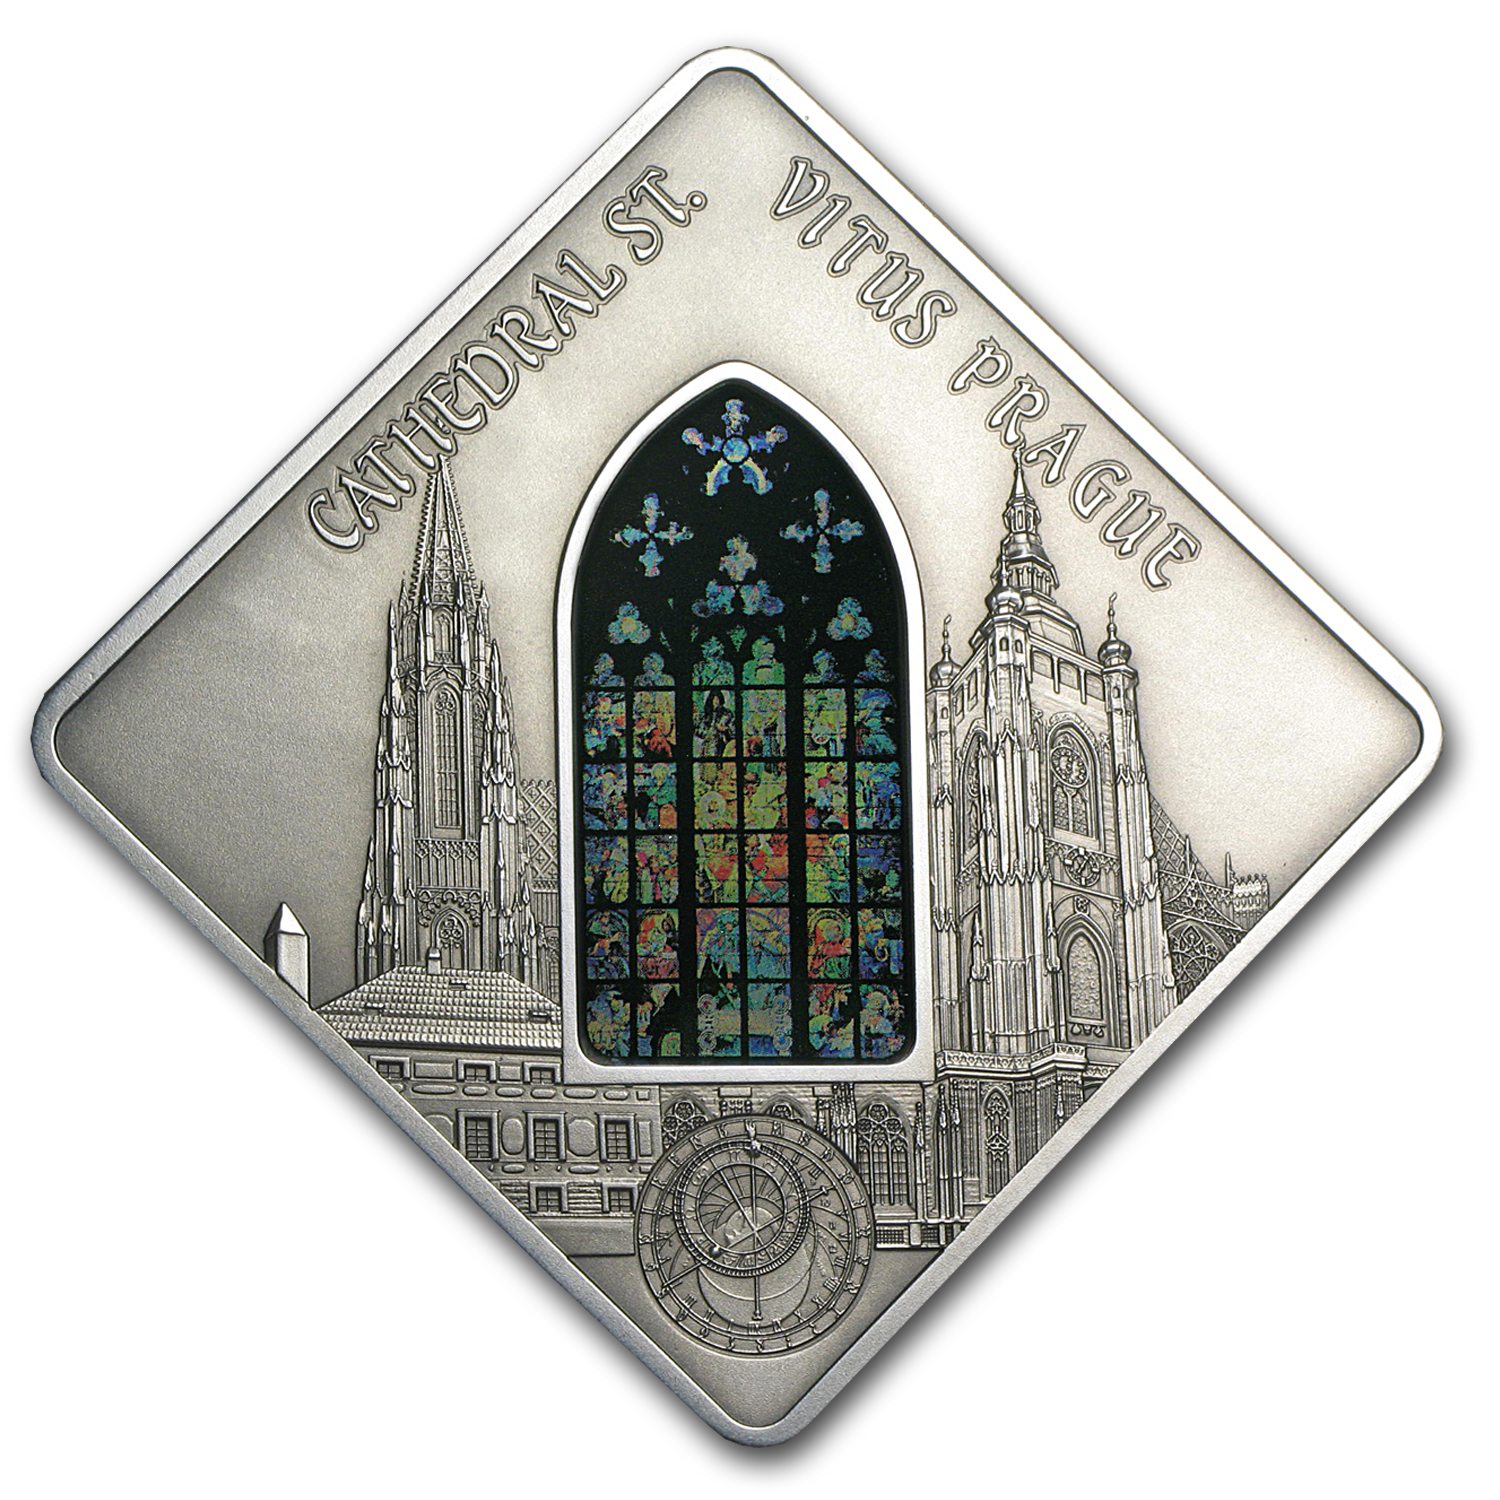 2013 Palau Proof Silver $10 St. Vitus Cathedral Prague